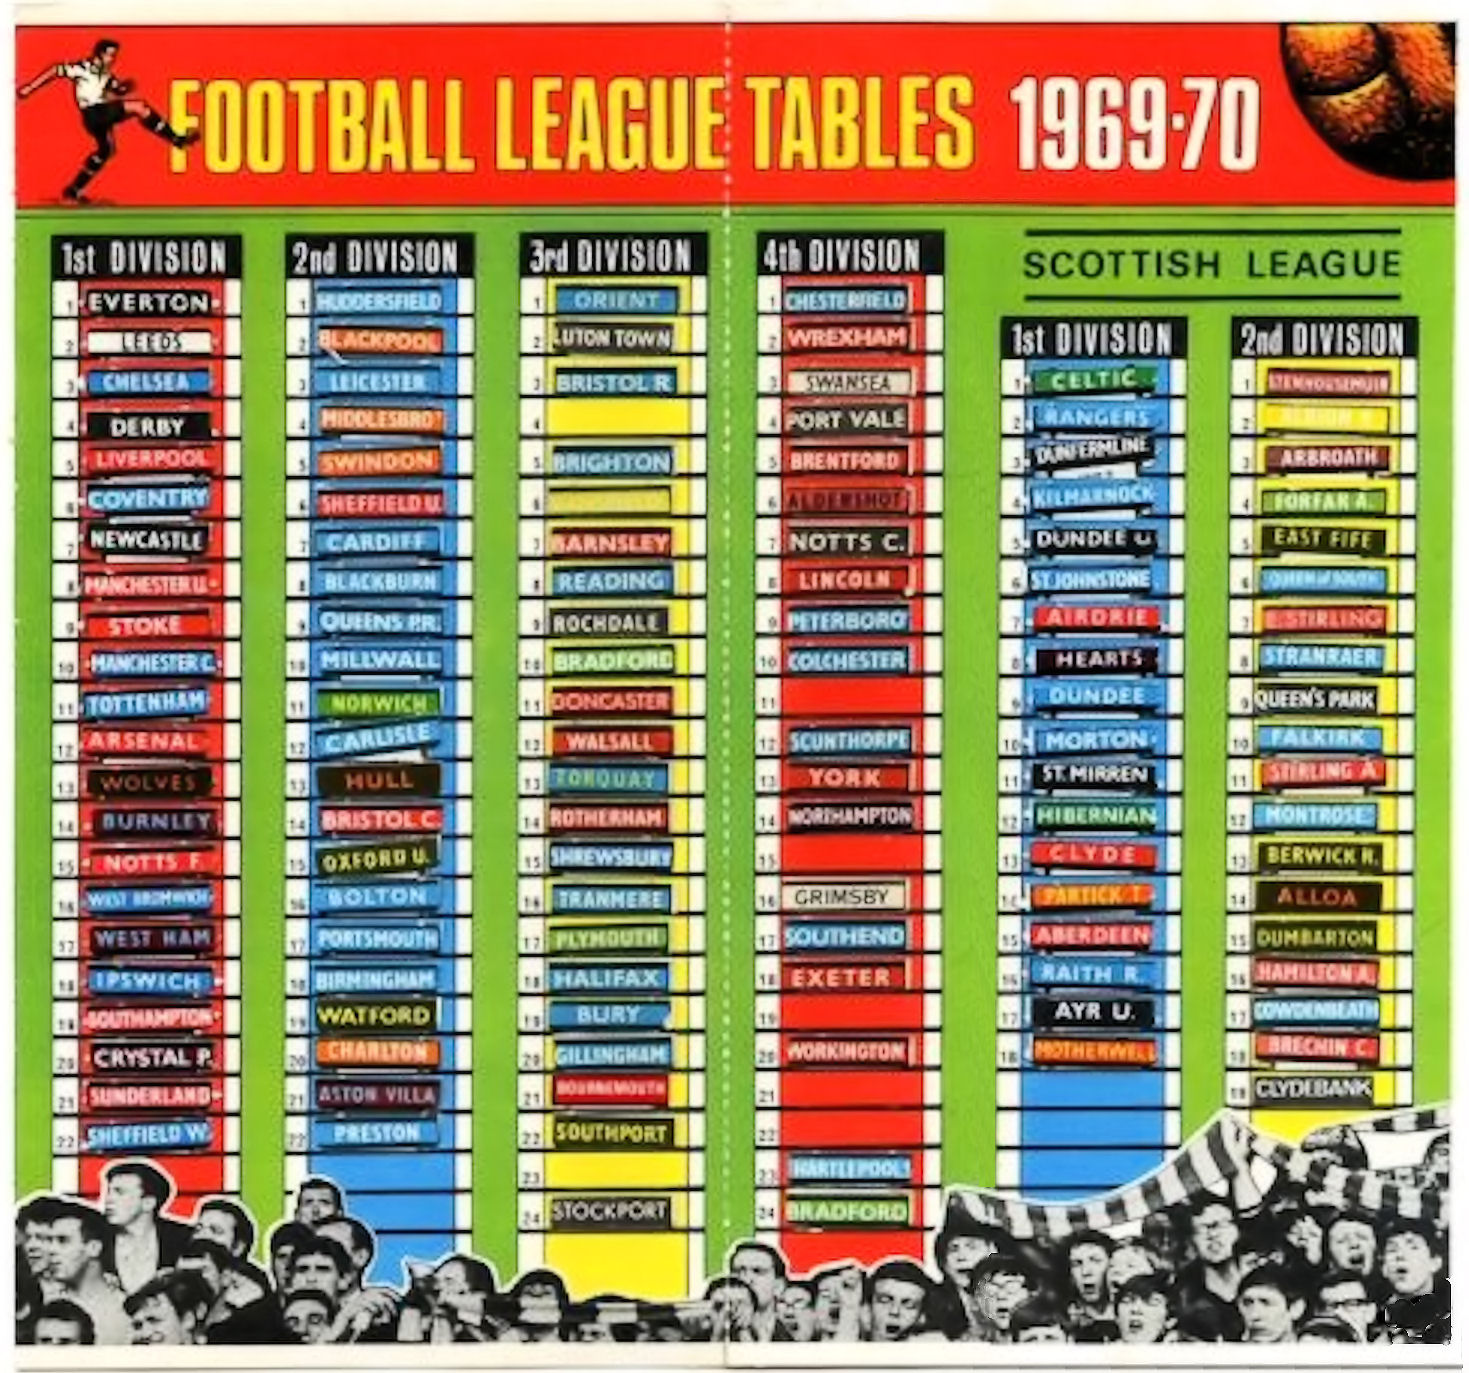 Retro dundee shoot league ladders 1969 70 for Football league tables